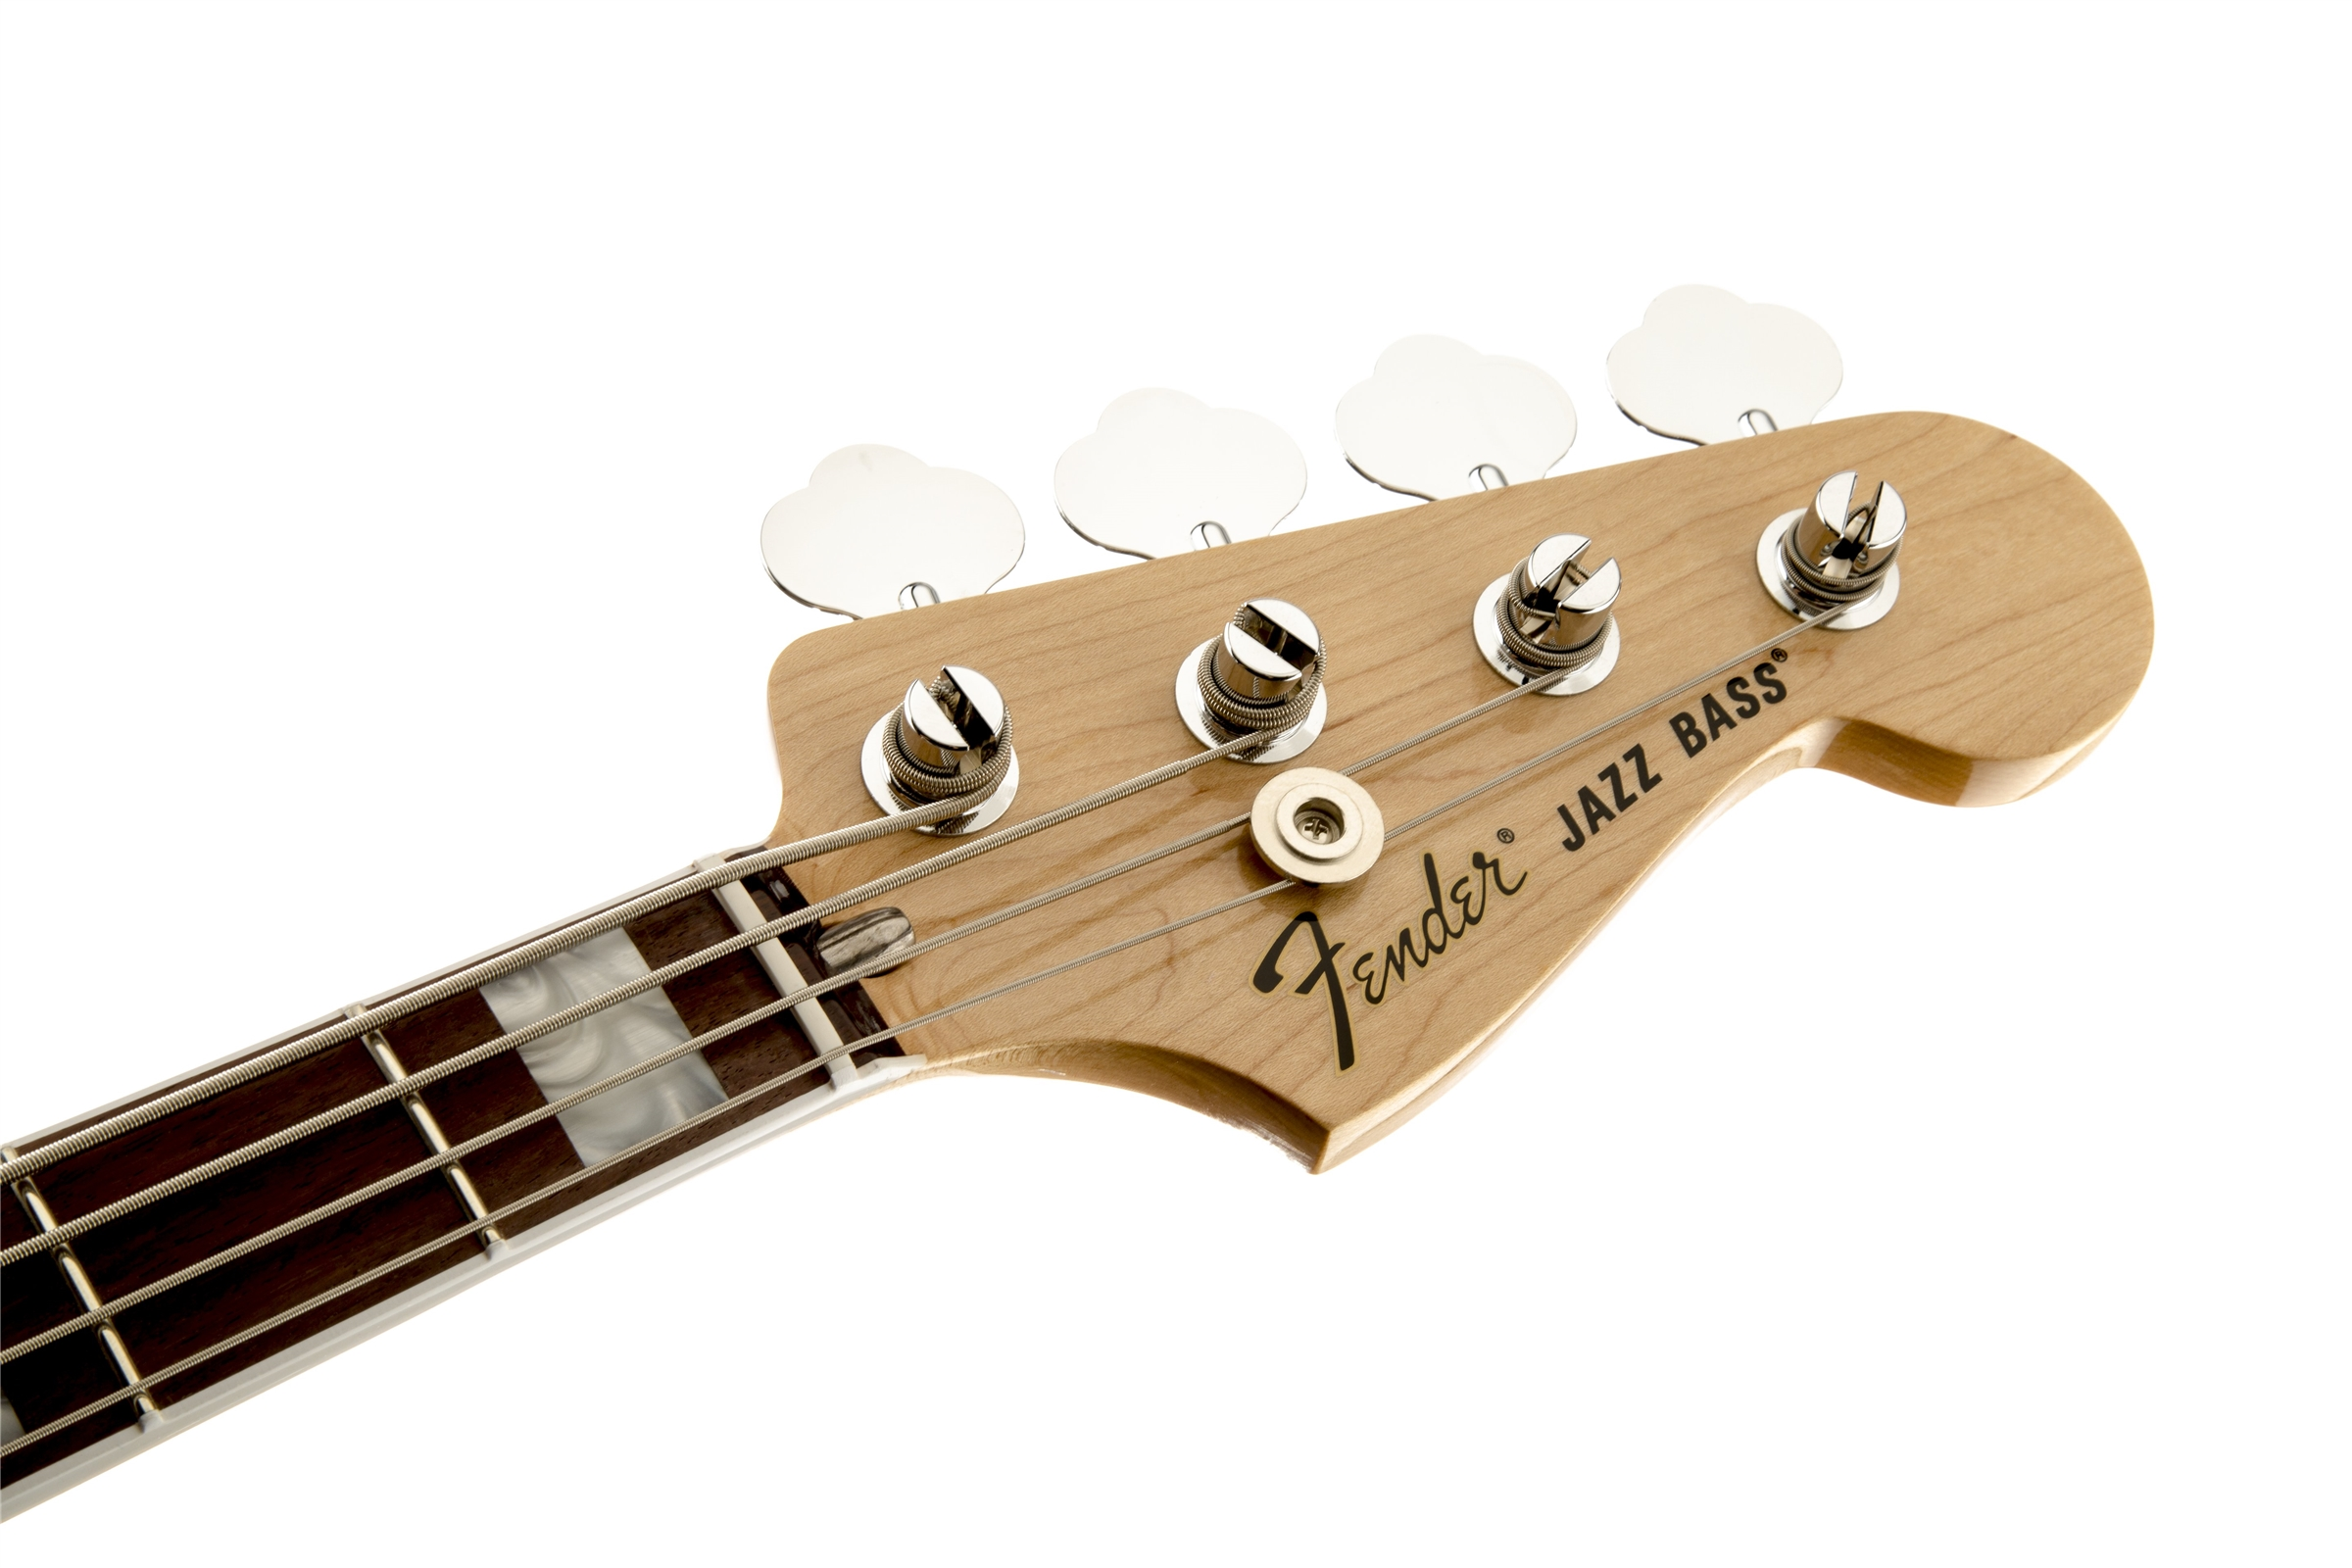 Fender '70s Jazz Bass® 3-Color Sunburst Rosewood Fingerboard Electric Bass Guitar